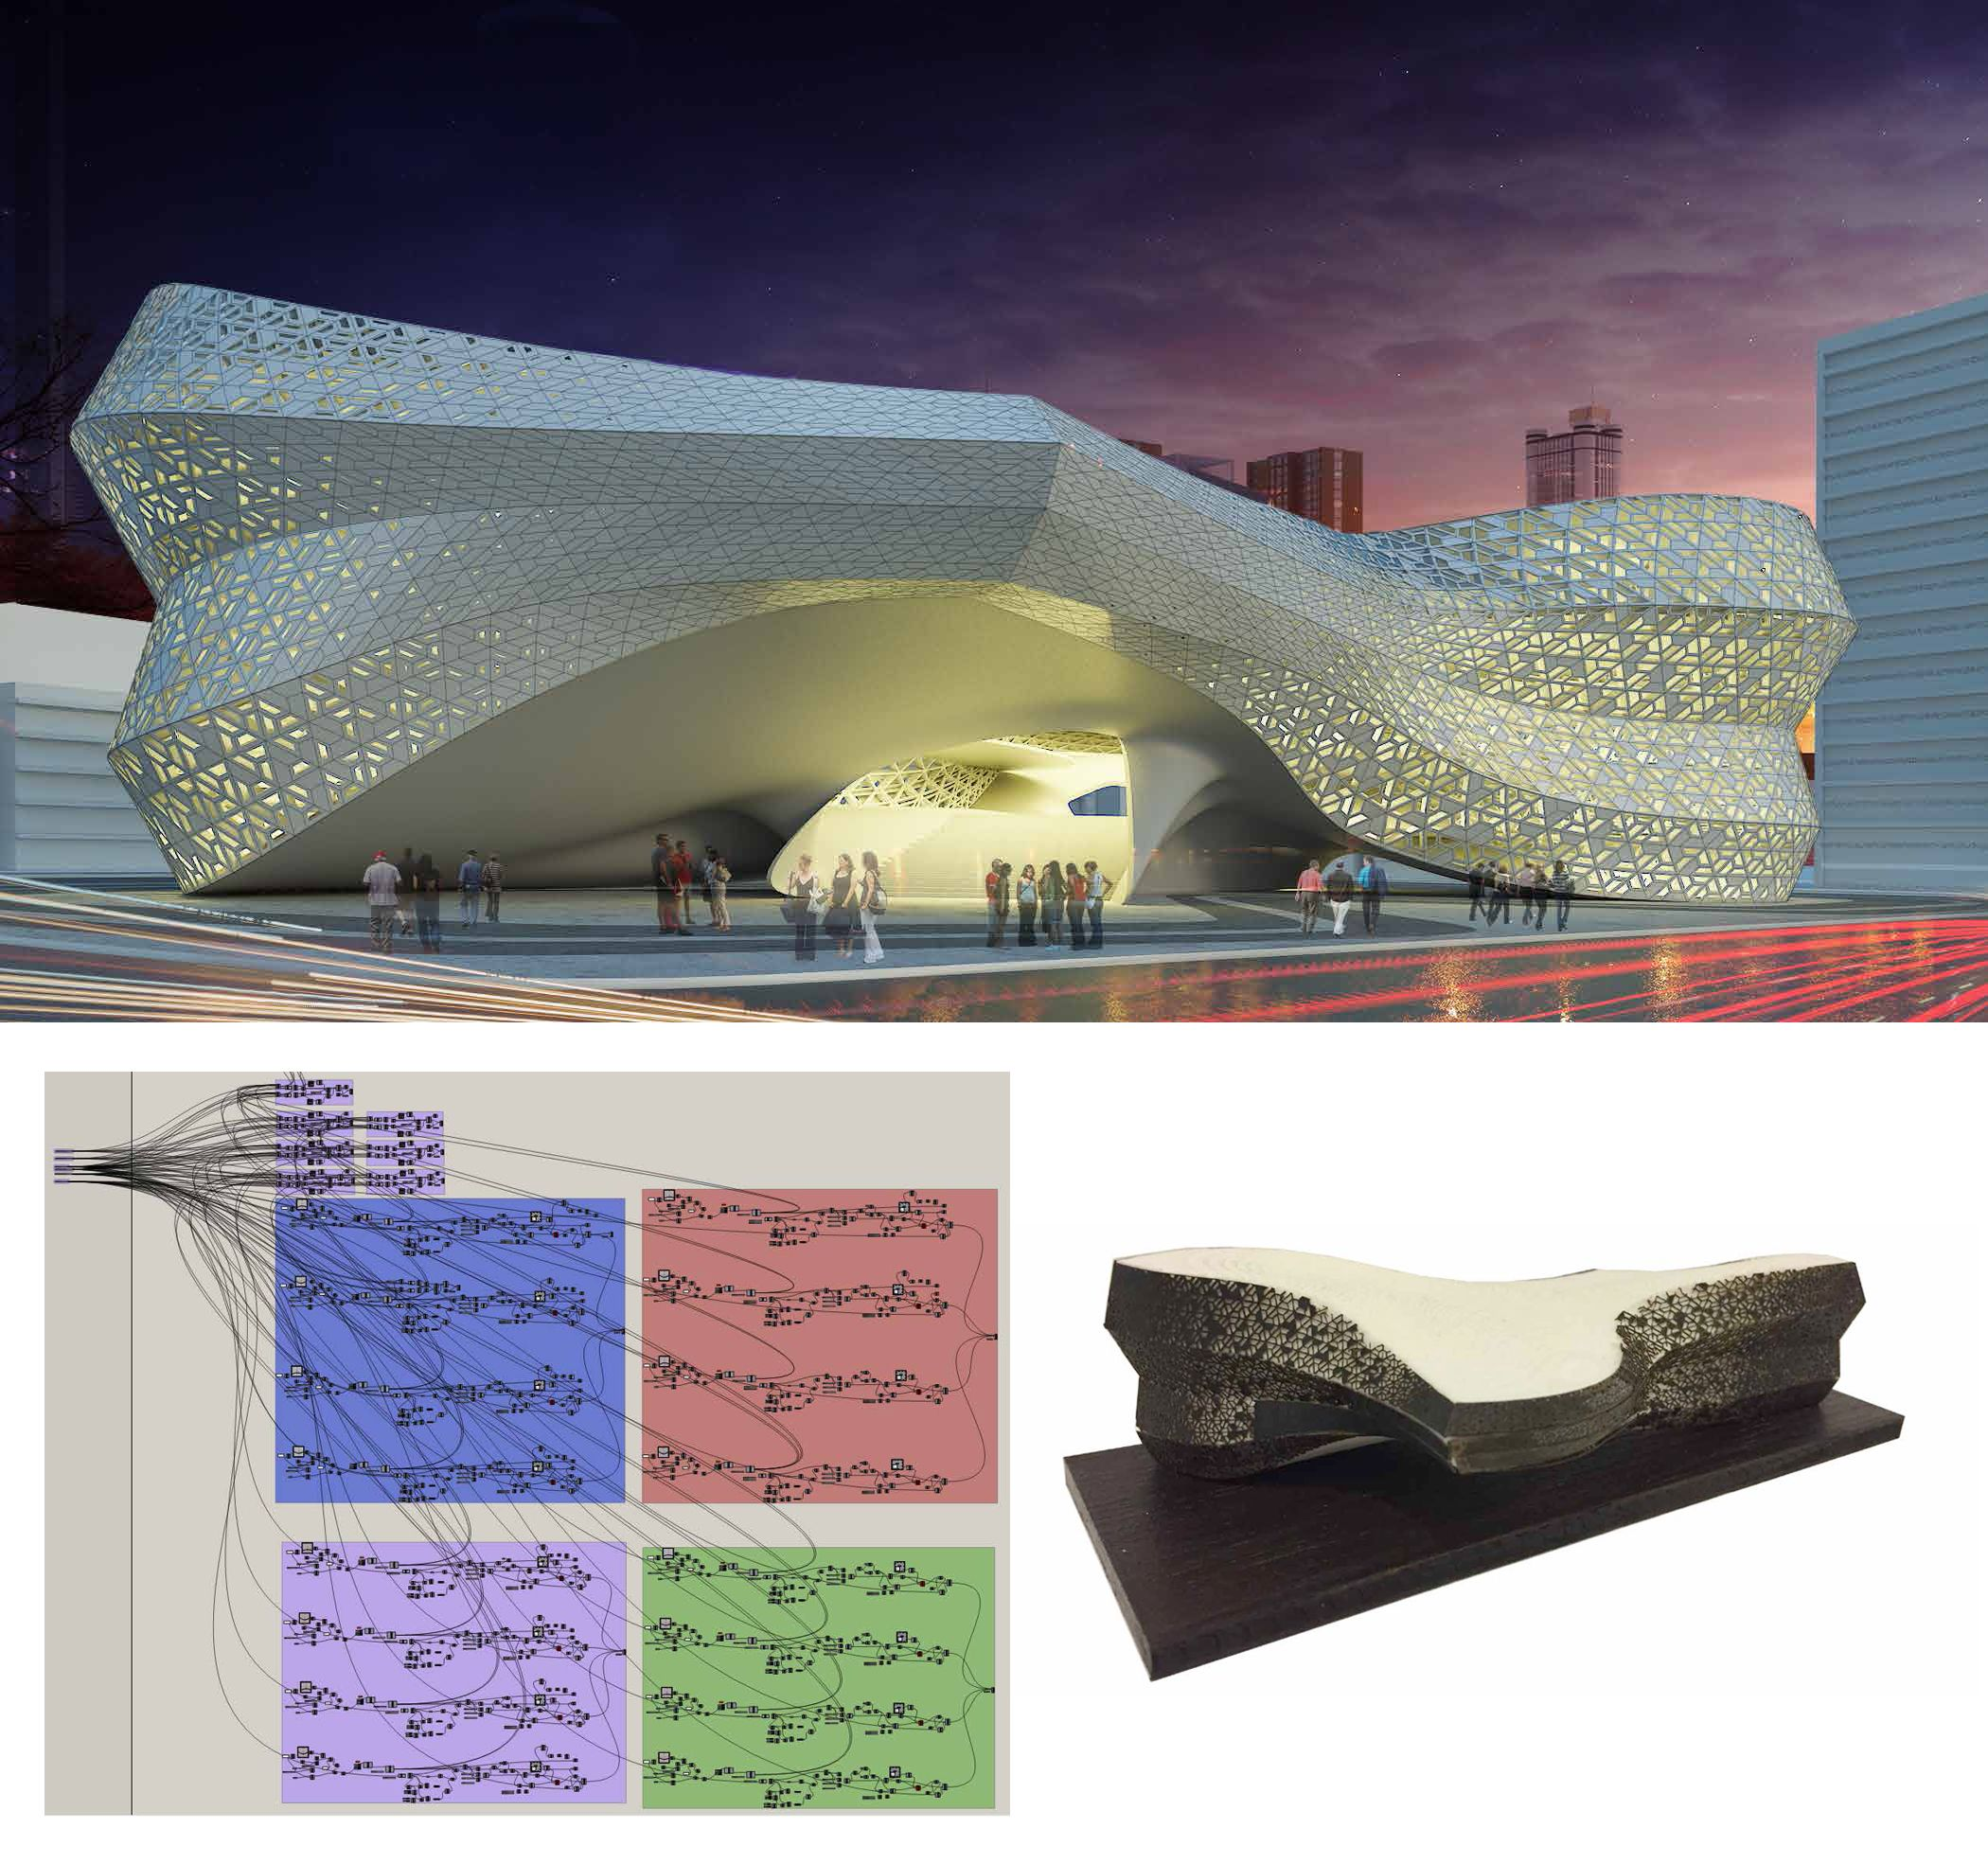 Image: James Chadud (Brazil) VI Edition students #parametricdesign #rhino3d #master #course #rhinoceros #grasshopper3d #revit #3Ddesign #3Dmodeling #architecture #nurbs #madrid #advanced